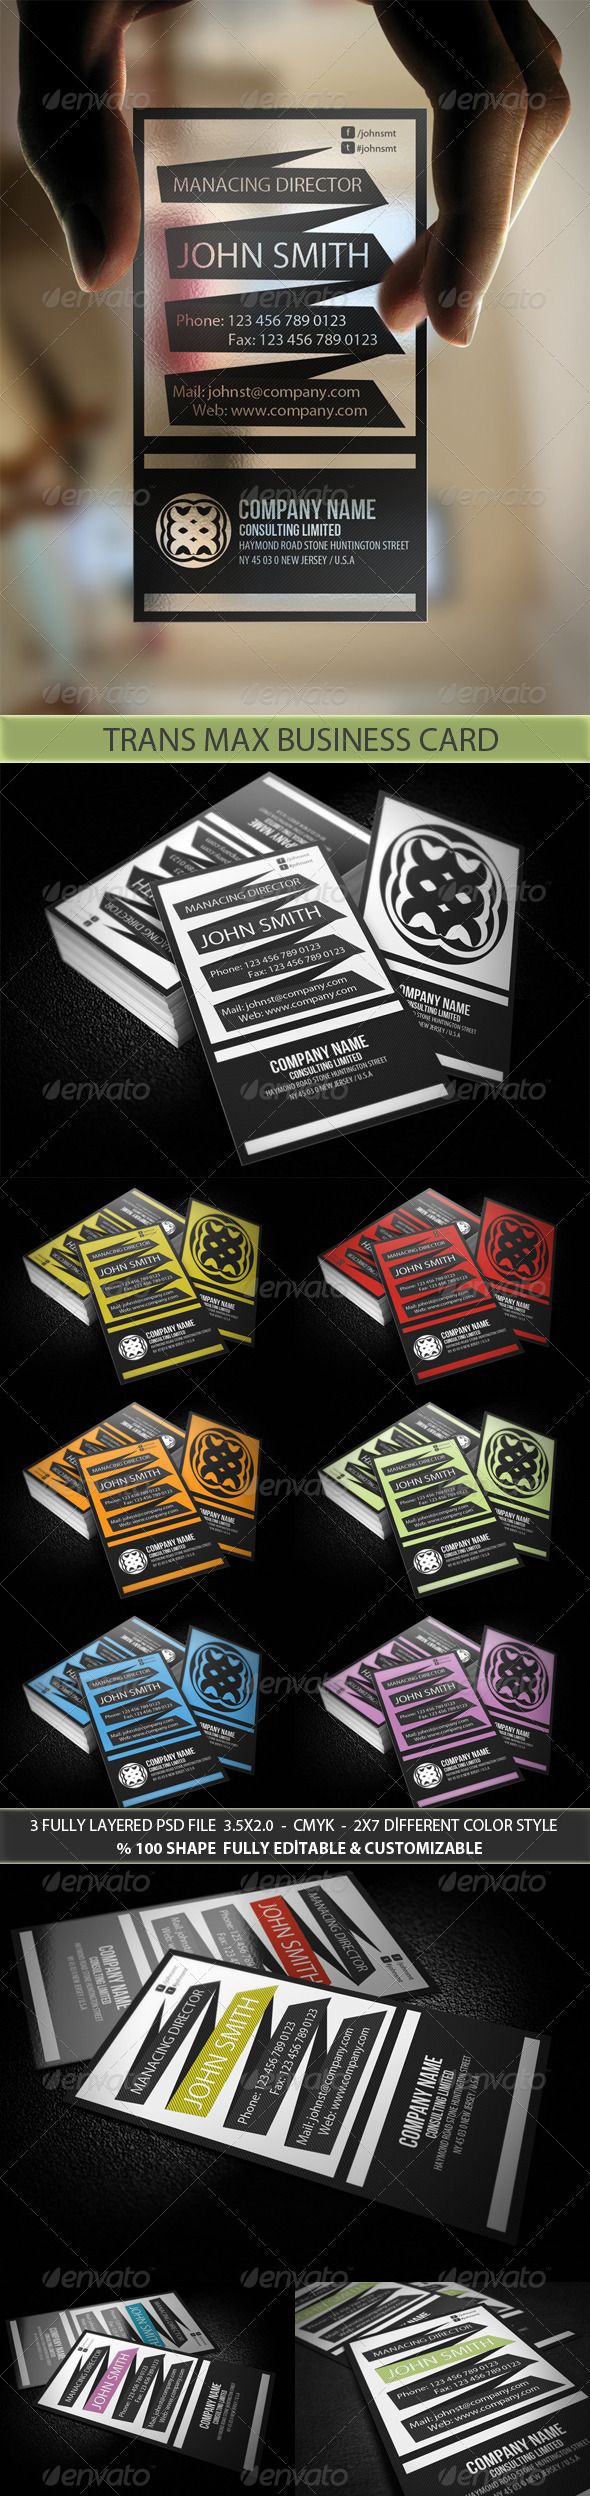 GraphicRiver Trans Max Business Card 1802117